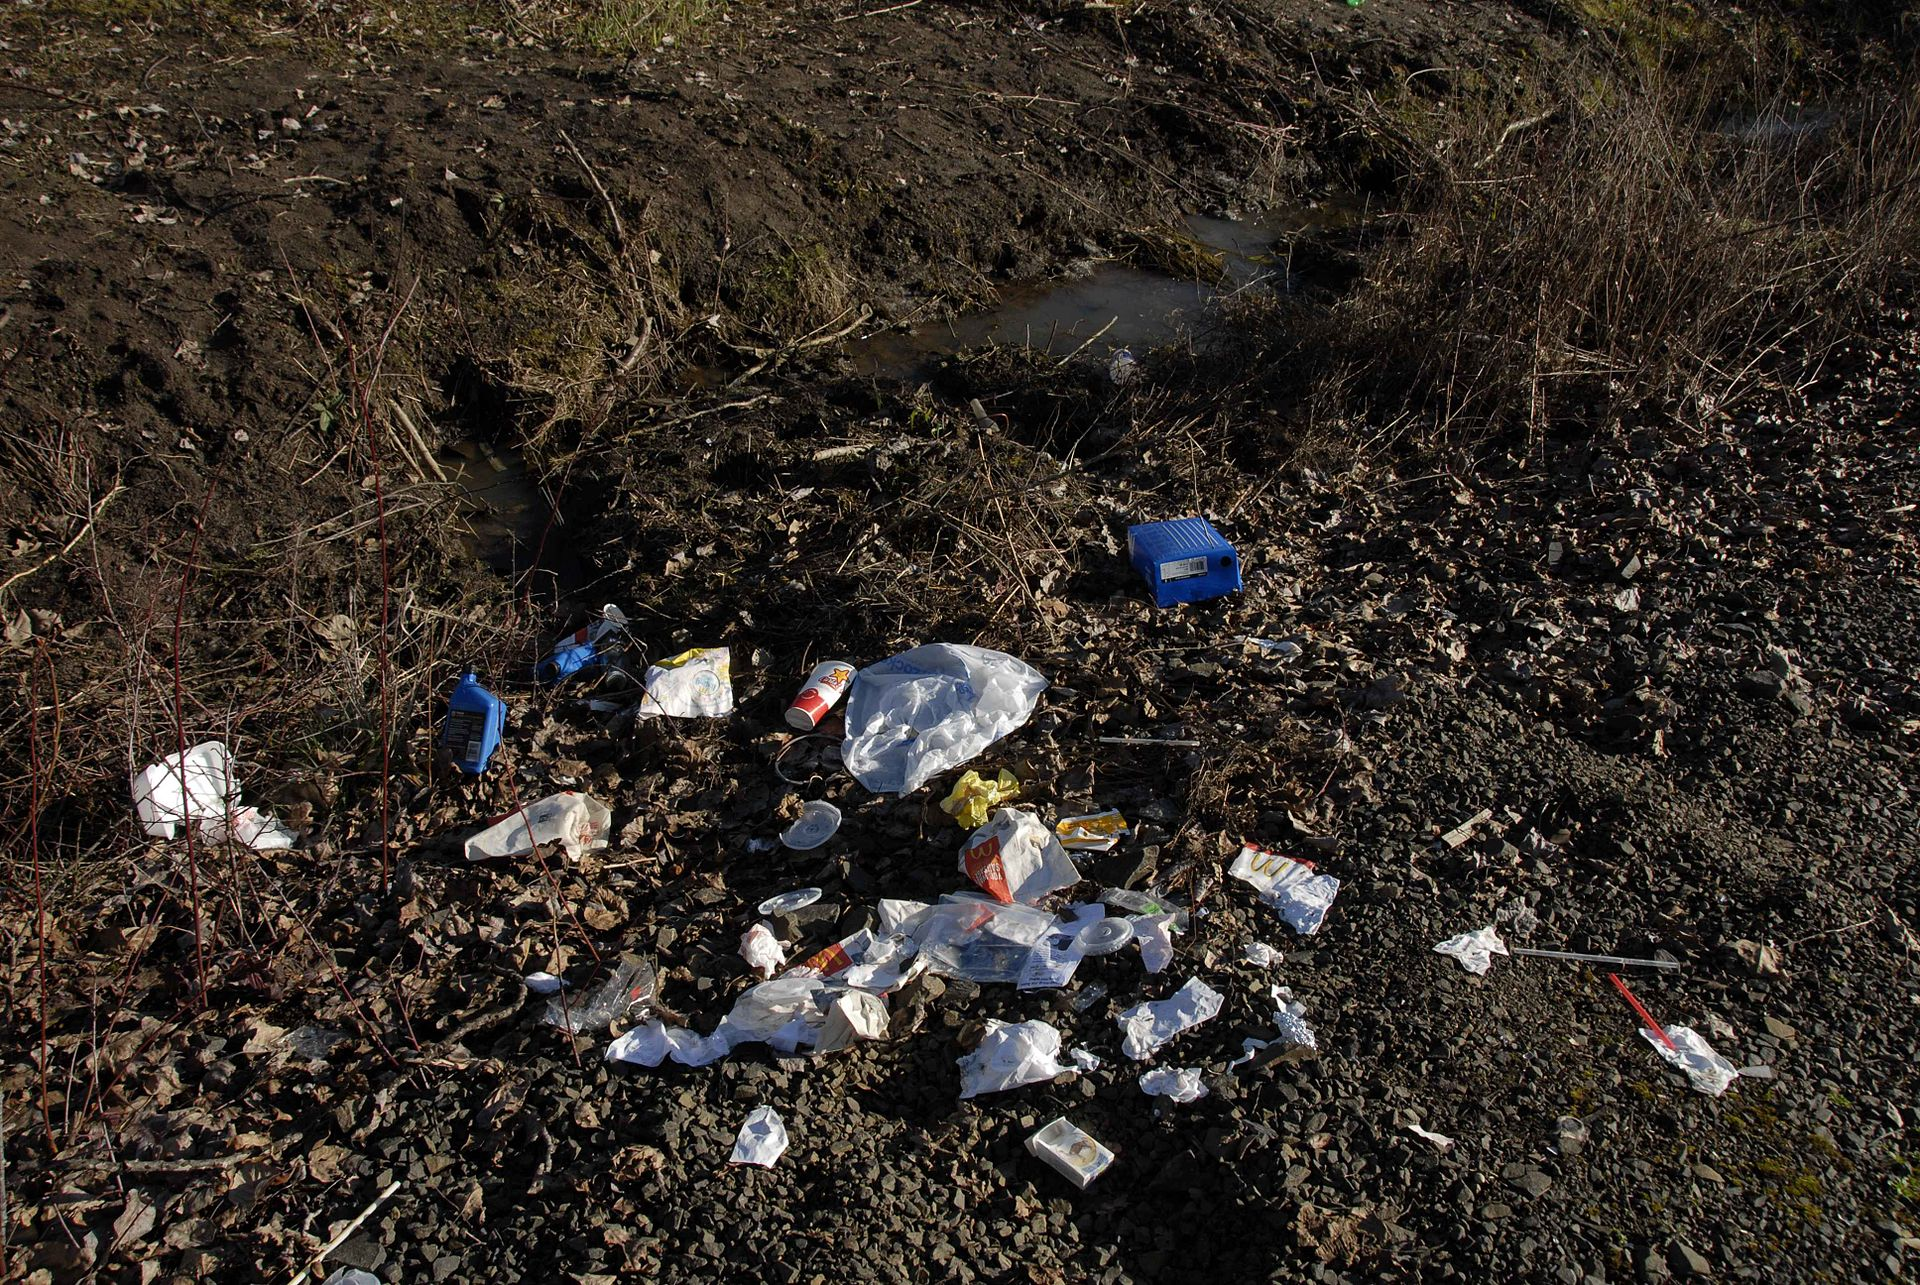 Close up image displaying trash scattered by the road side.jpg